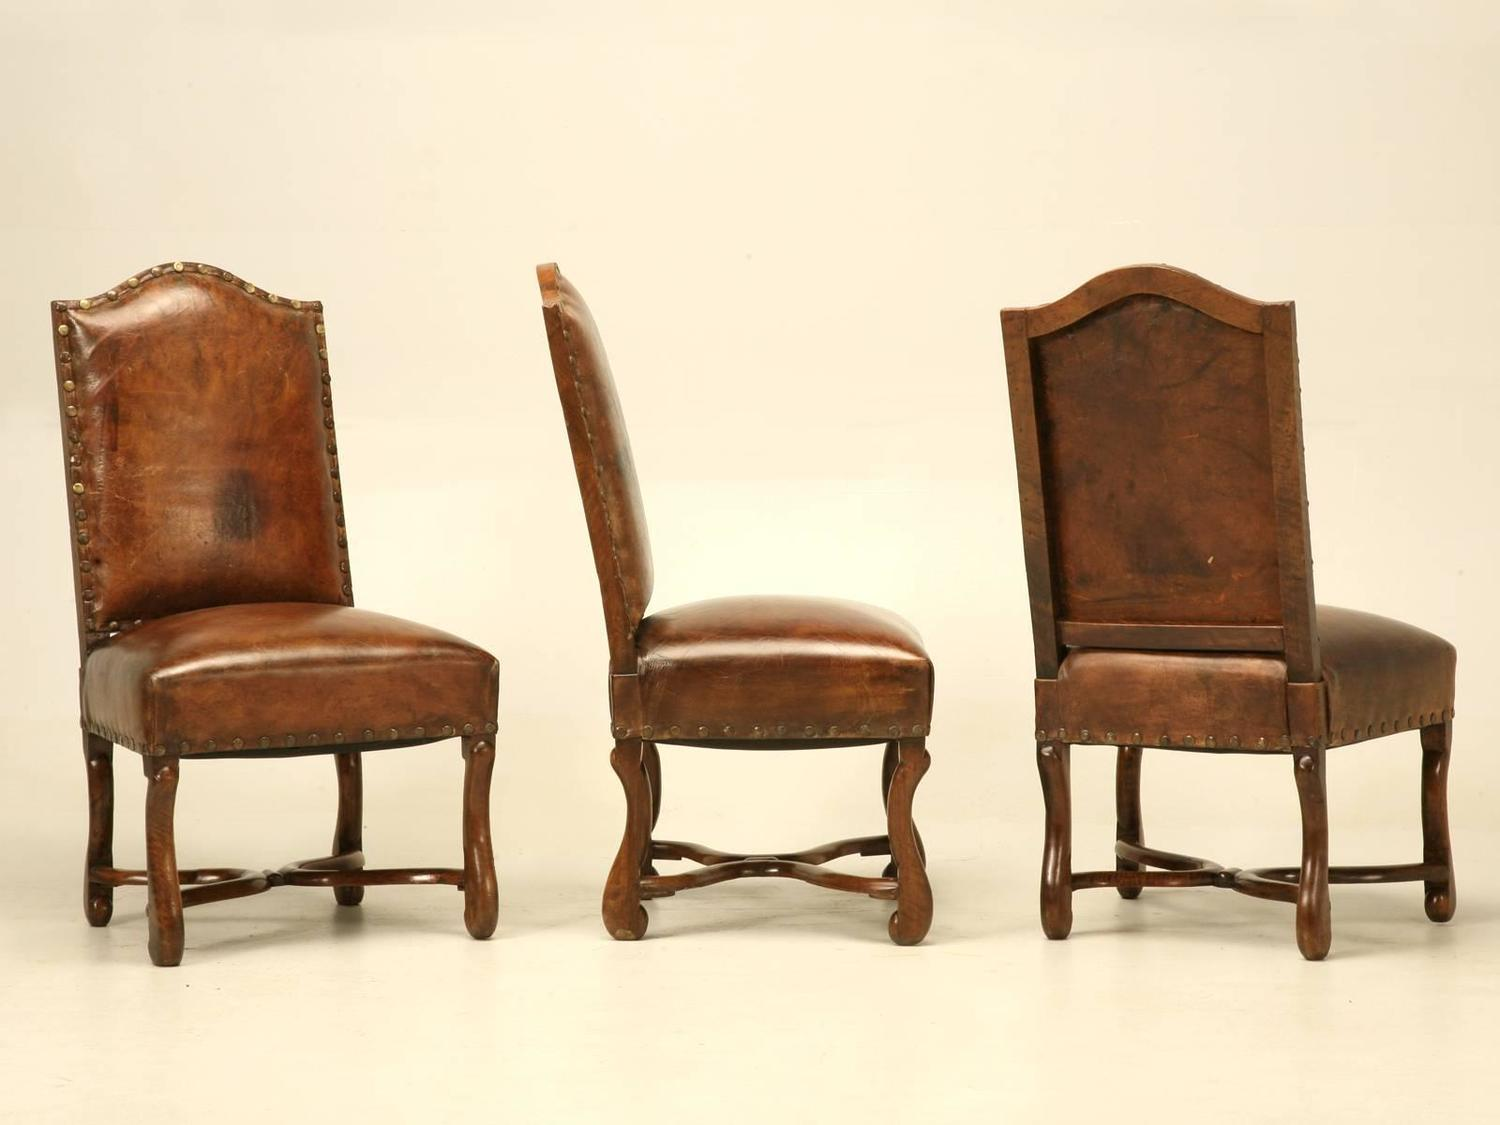 French Leather Dining Chairs circa 1750 at 1stdibs : j173110z from www.1stdibs.com size 1500 x 1125 jpeg 85kB